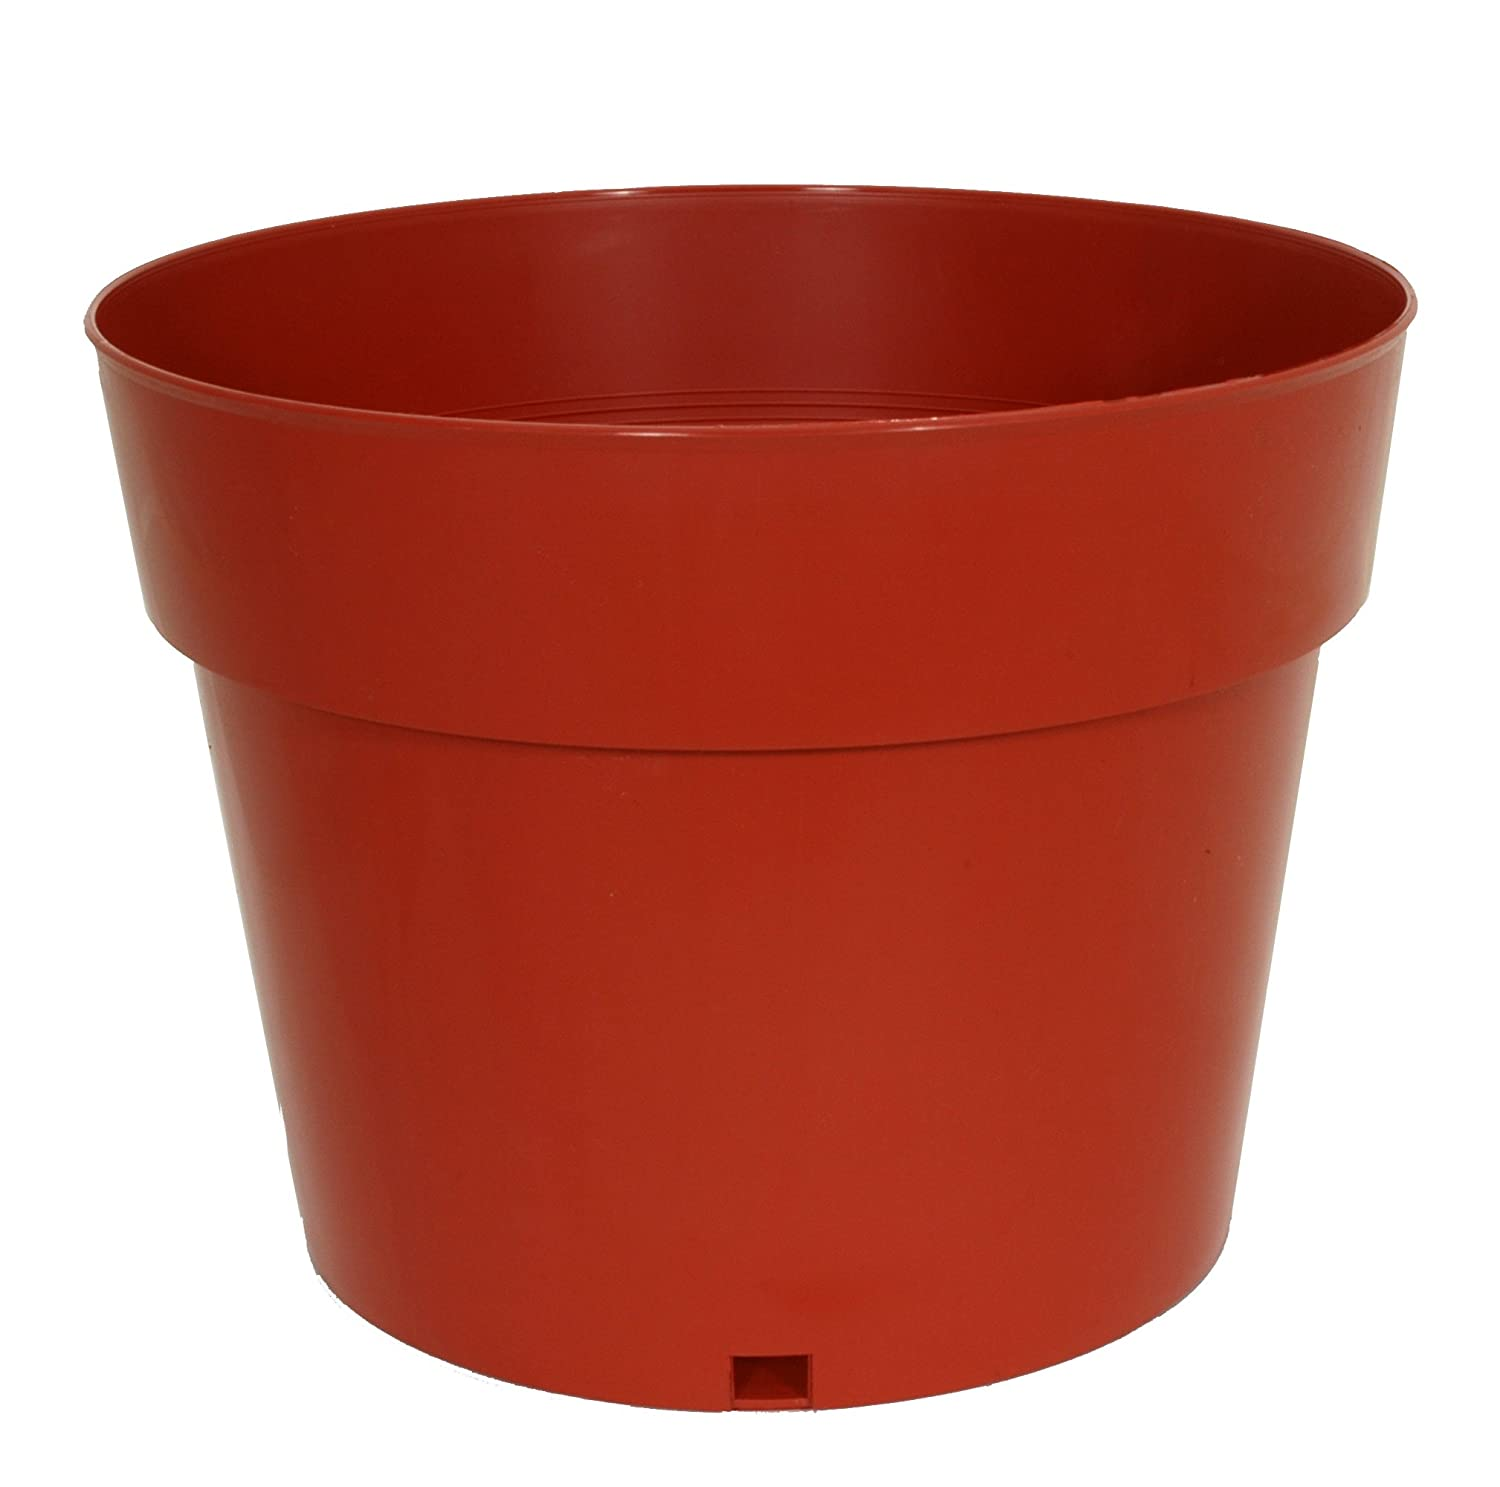 Akro Mils STR04000E24 4-Inch Grower Pot, Terra Cotta